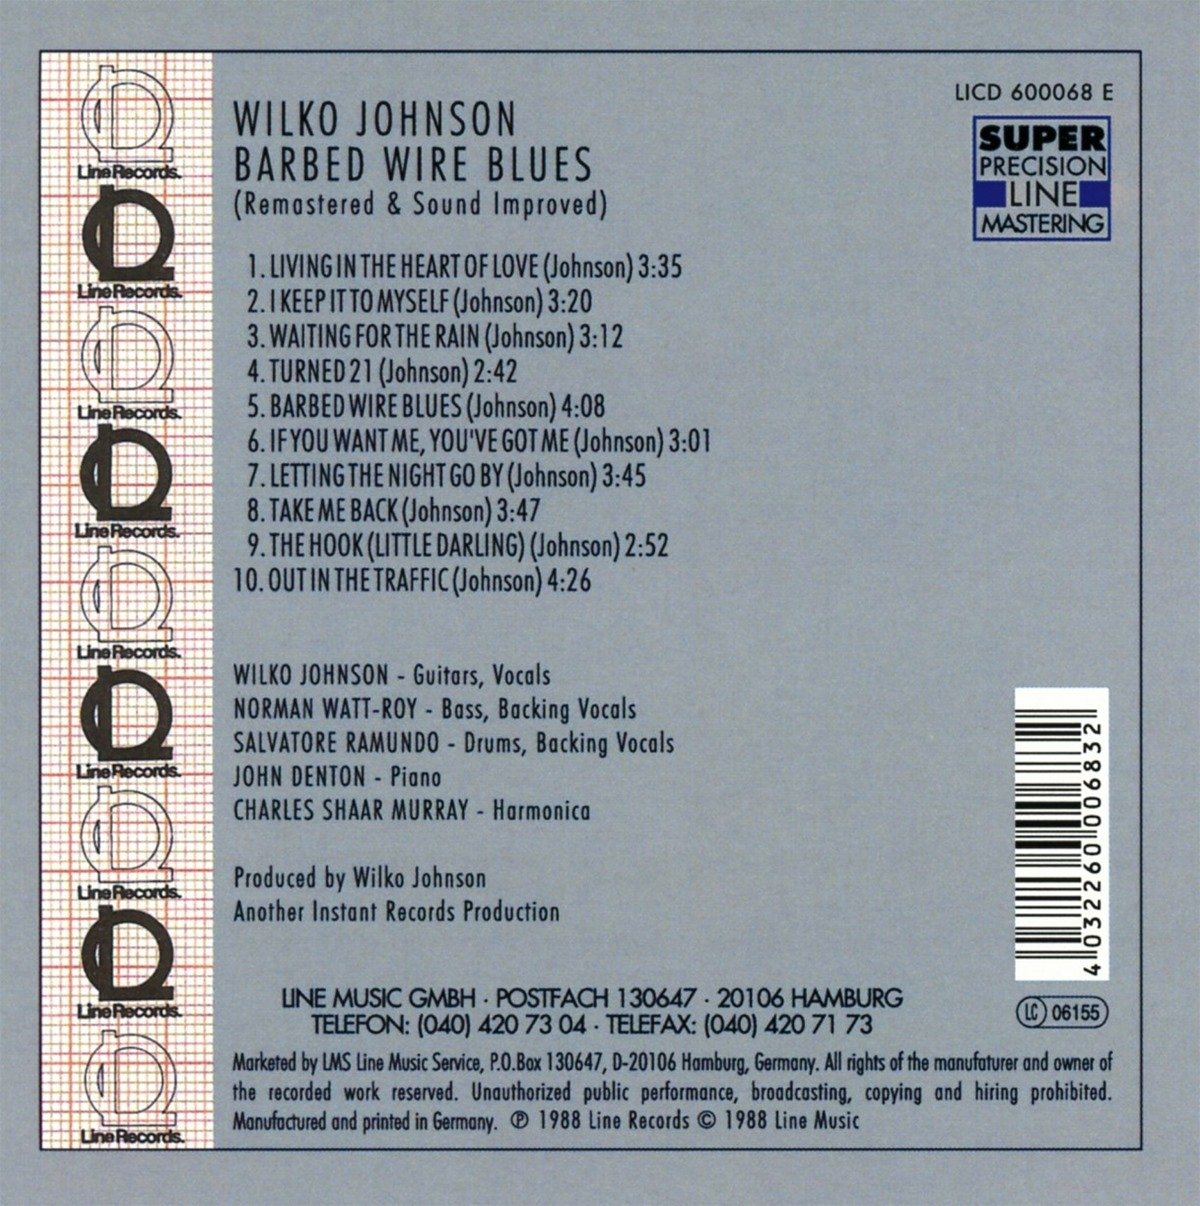 Barbed Wire Blues (Remastered and Sound Improved) by Wilko Johnson ...